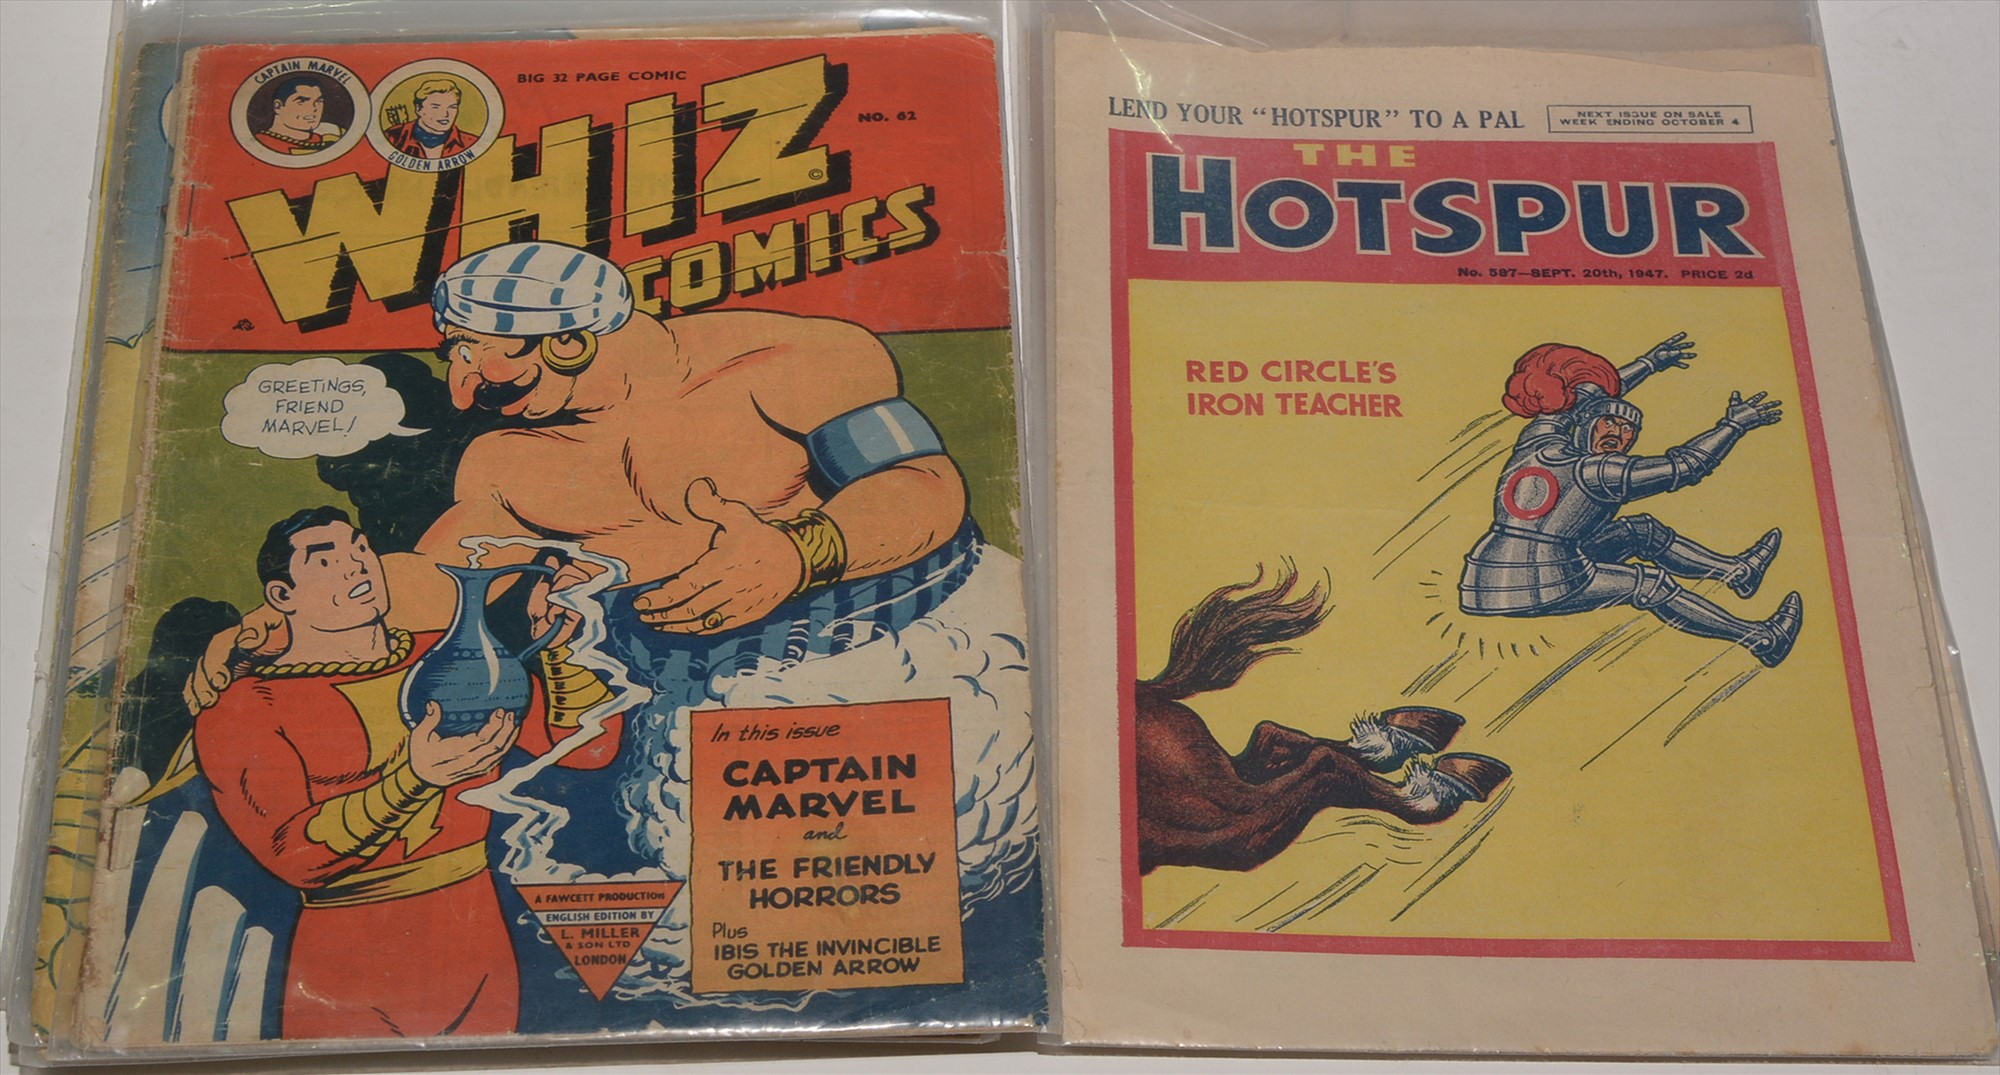 The Wizard 1946/57 (x 3); The Hotspur No. 587, September 1947. (4), also Whizz Comics (L. Miller)